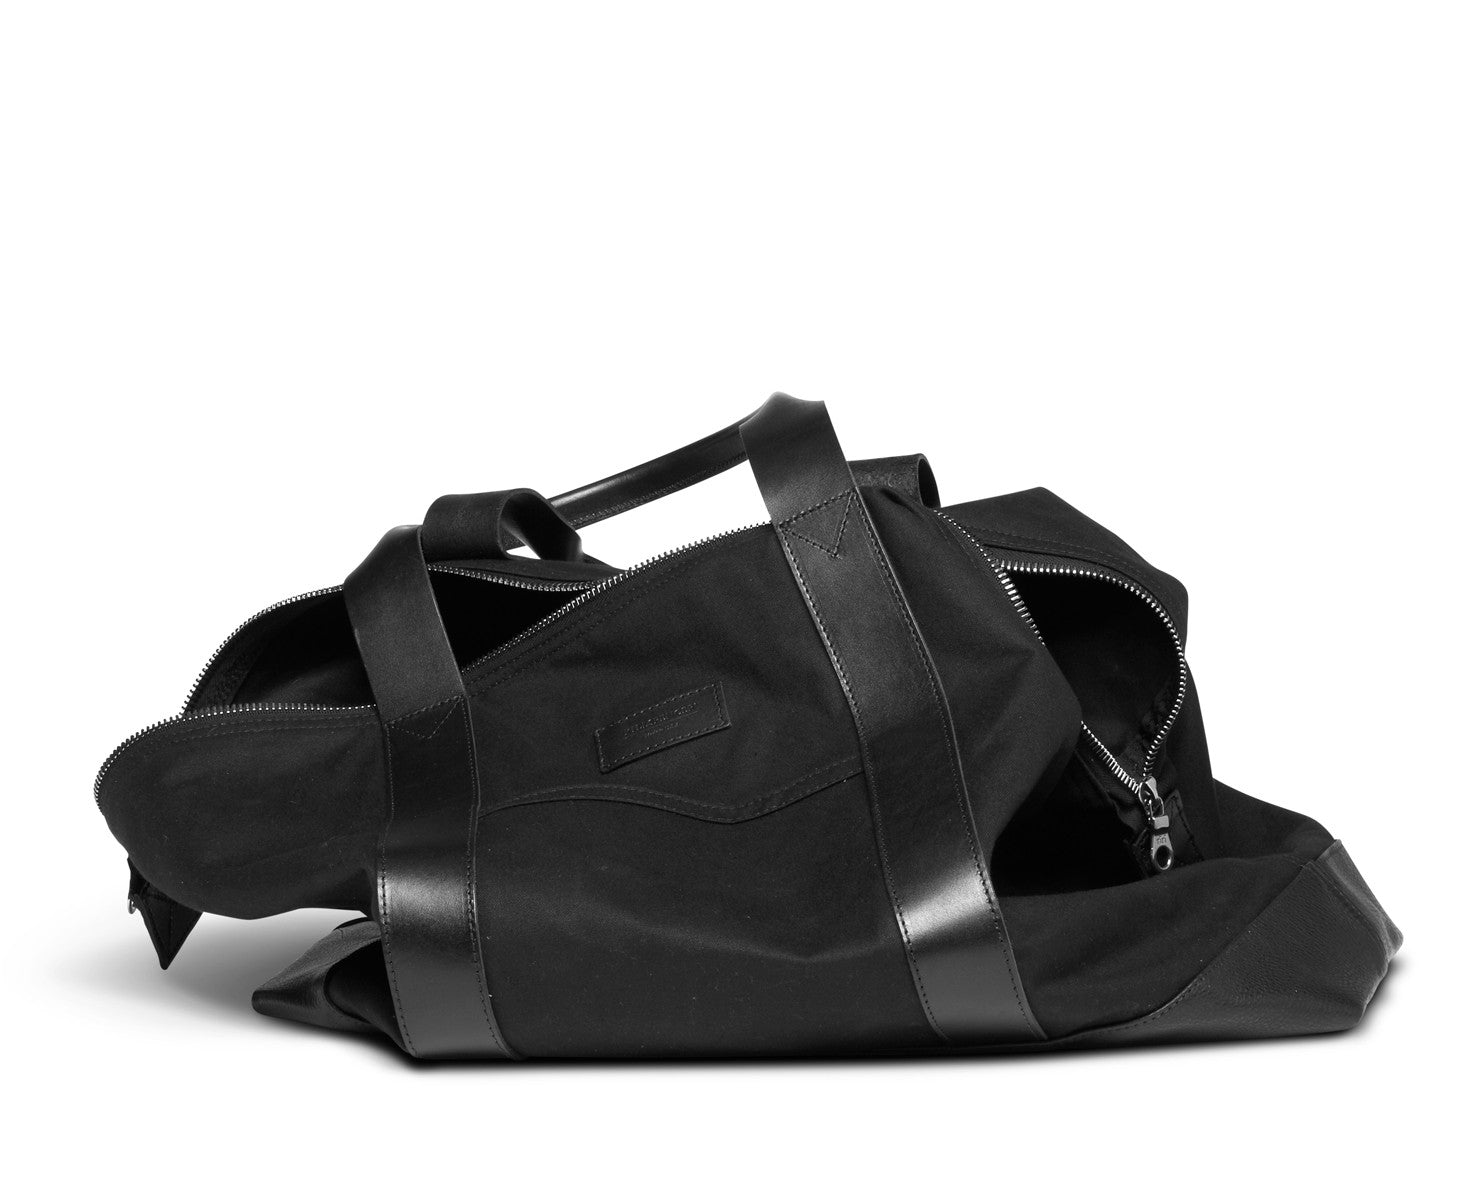 TRAVEL TOTE | KILLSPENCER® - Black Canvas